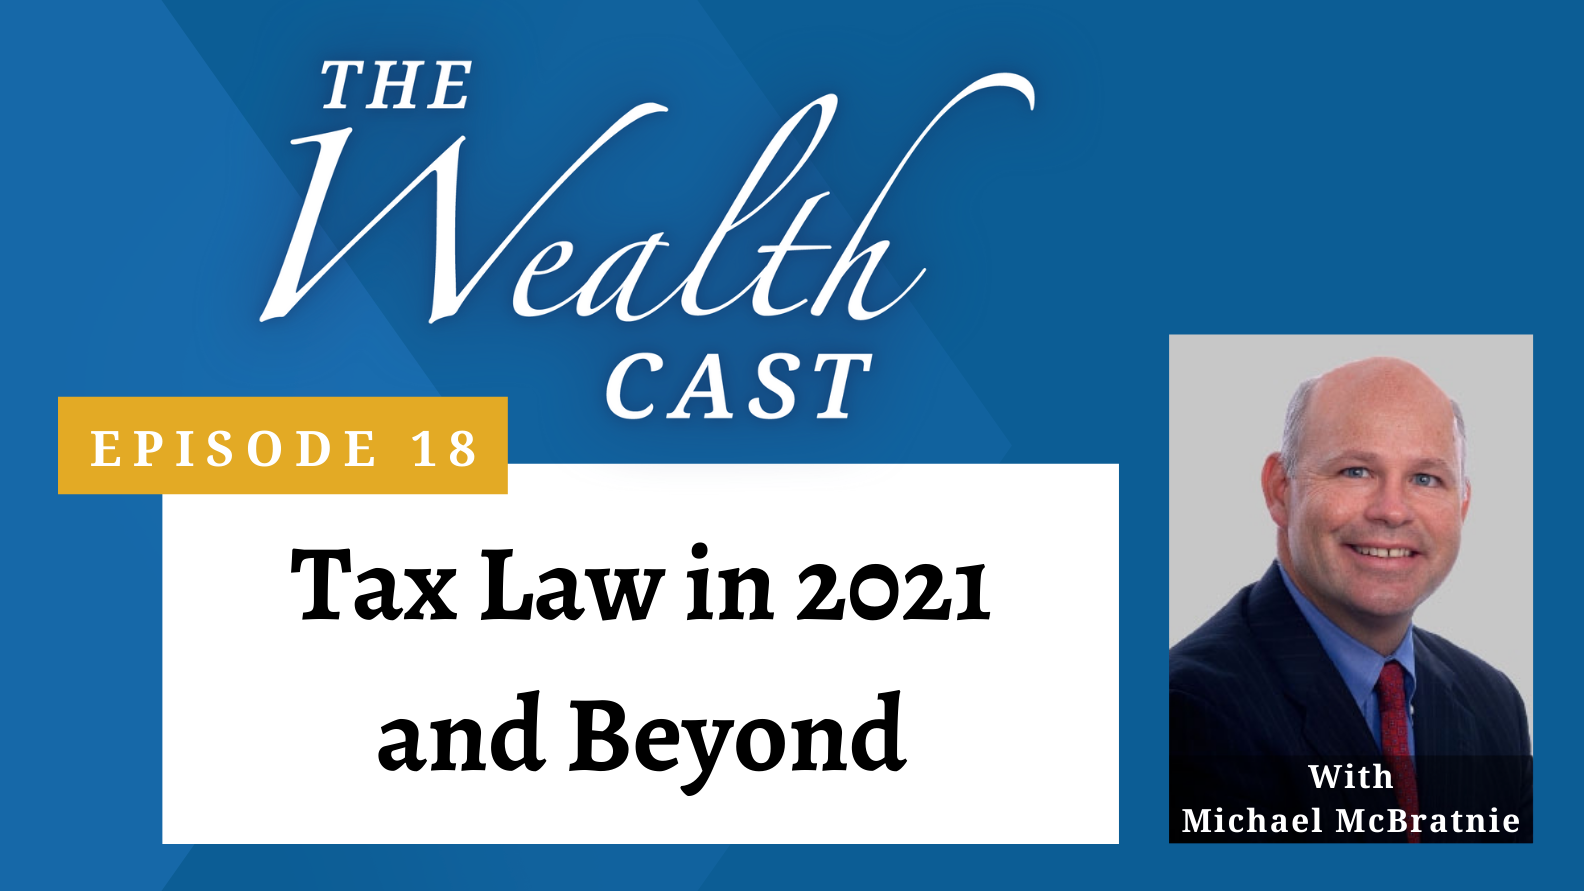 The Wealth Cast Episode 18: Tax Law in 2021 and Beyond - With Michael McBratnie